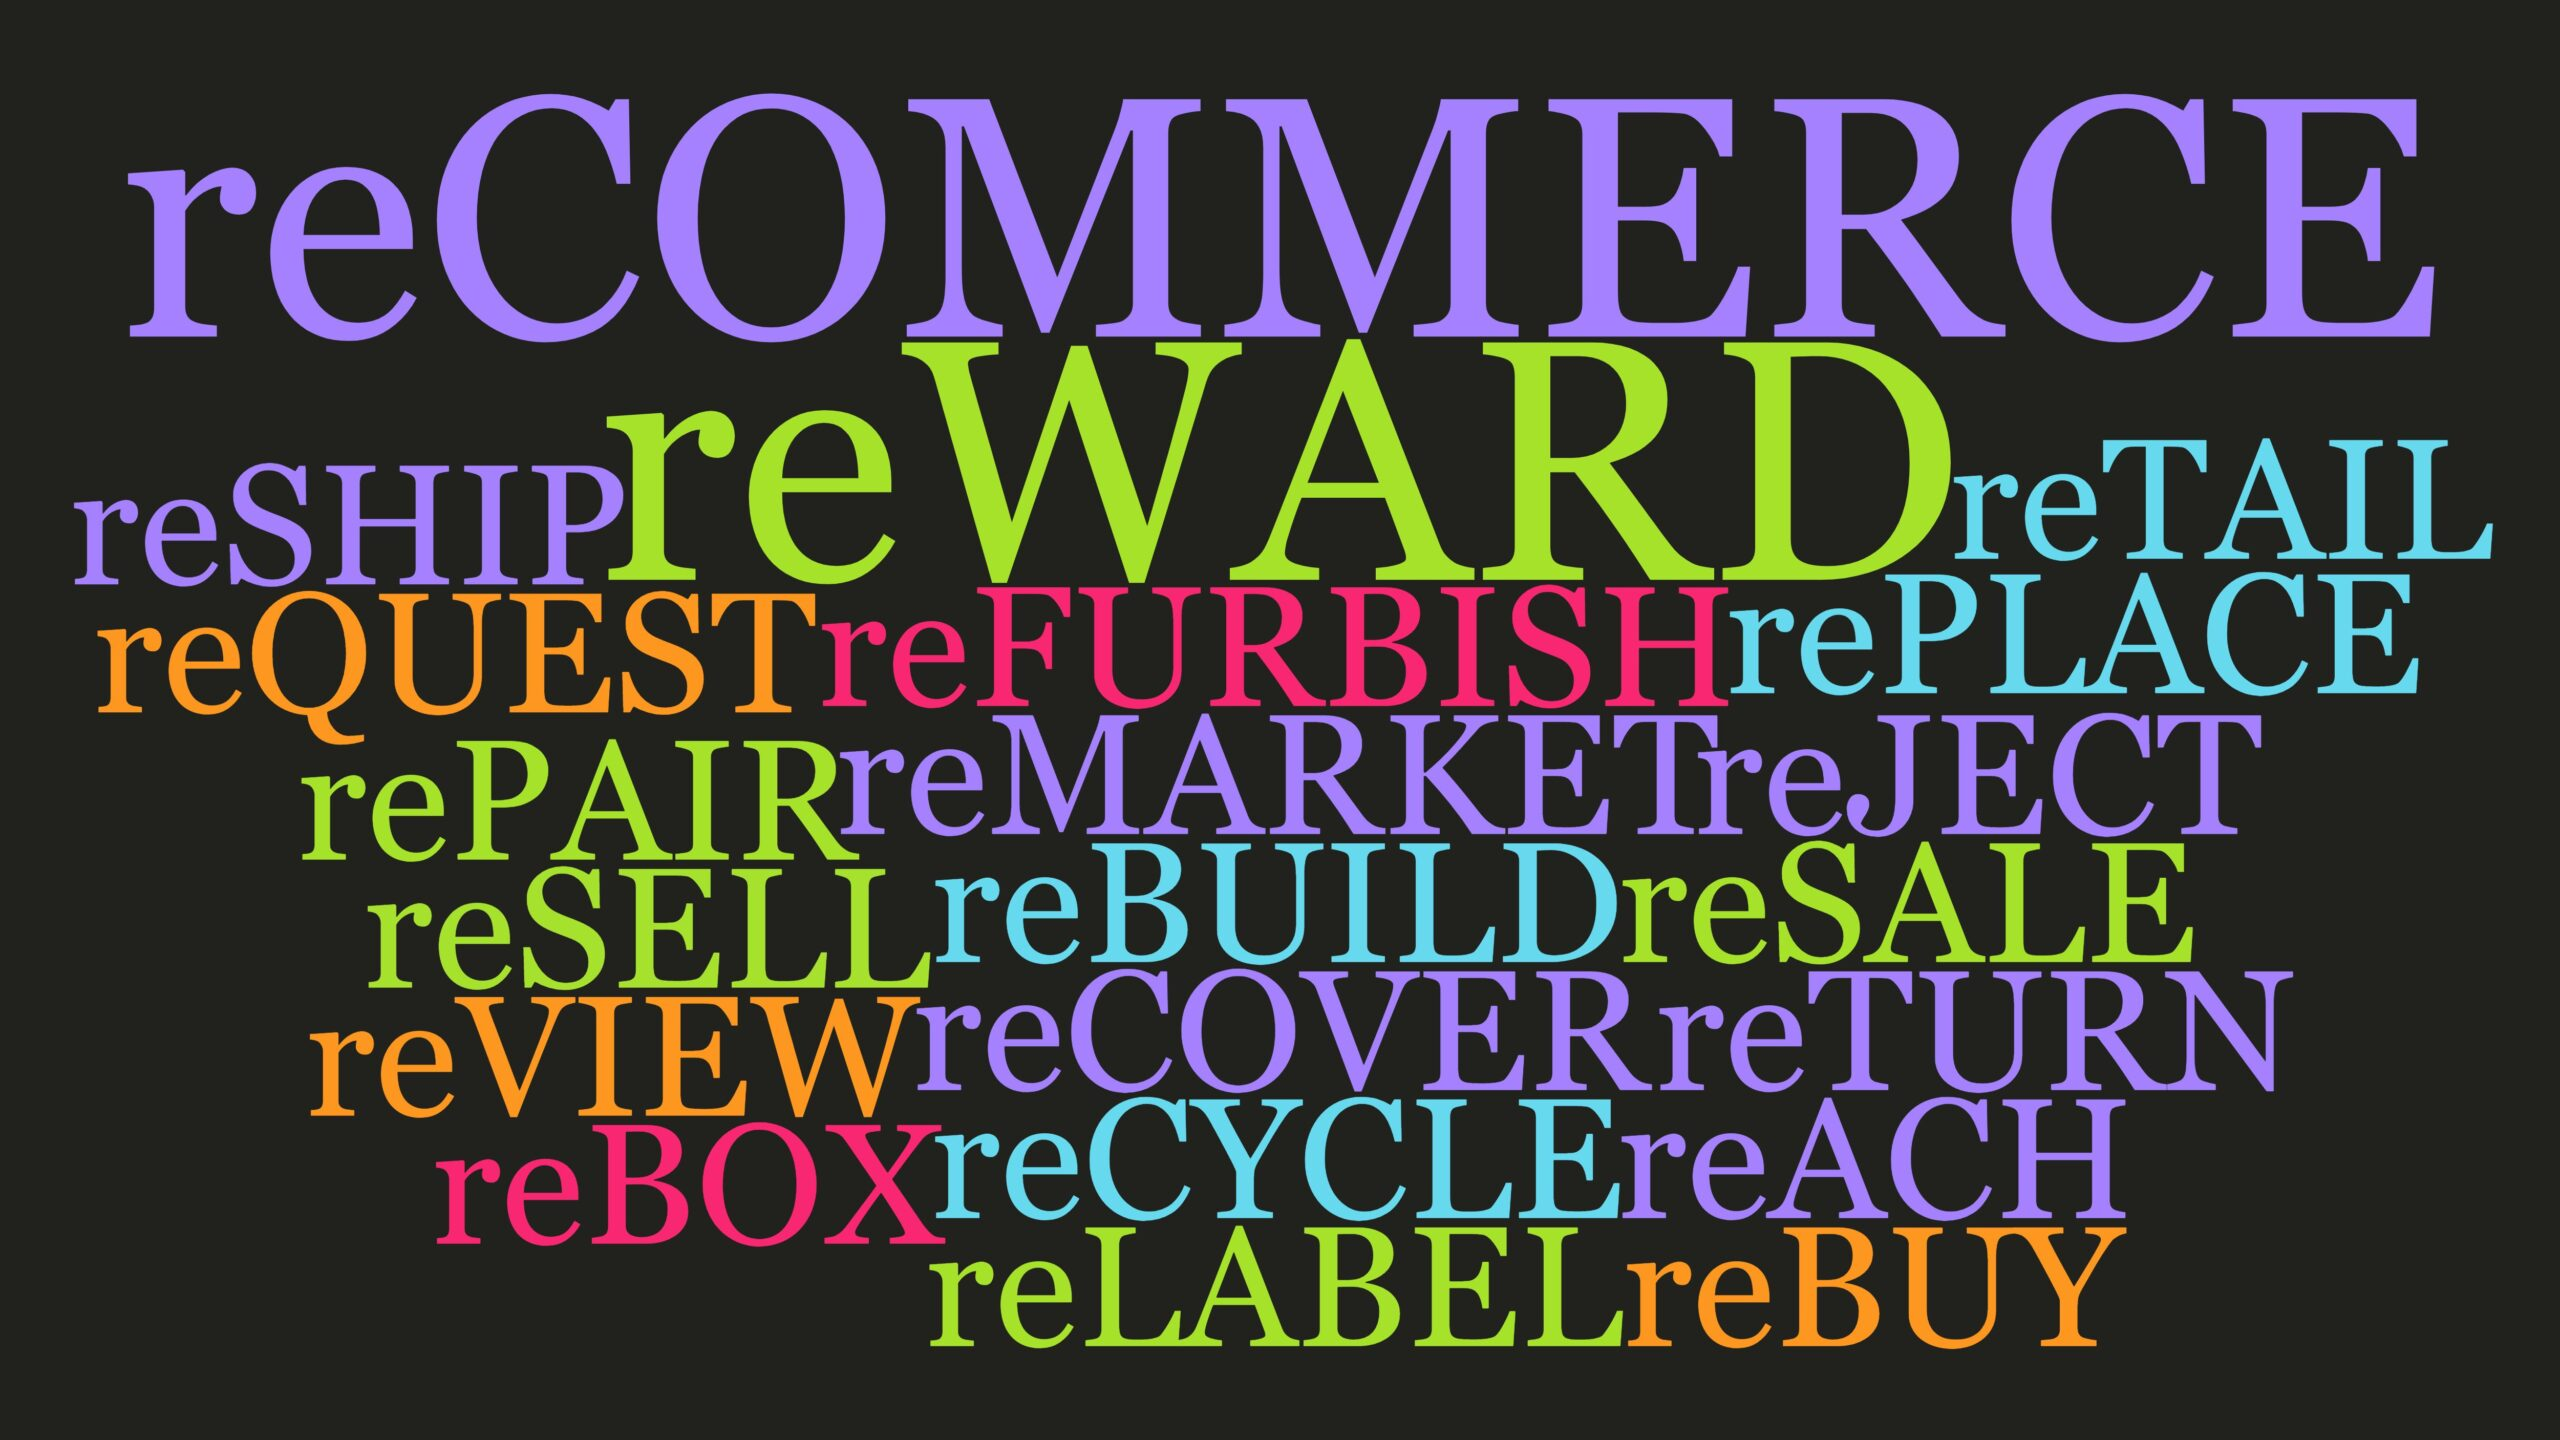 eCommerce reCOMMERCE reWARD